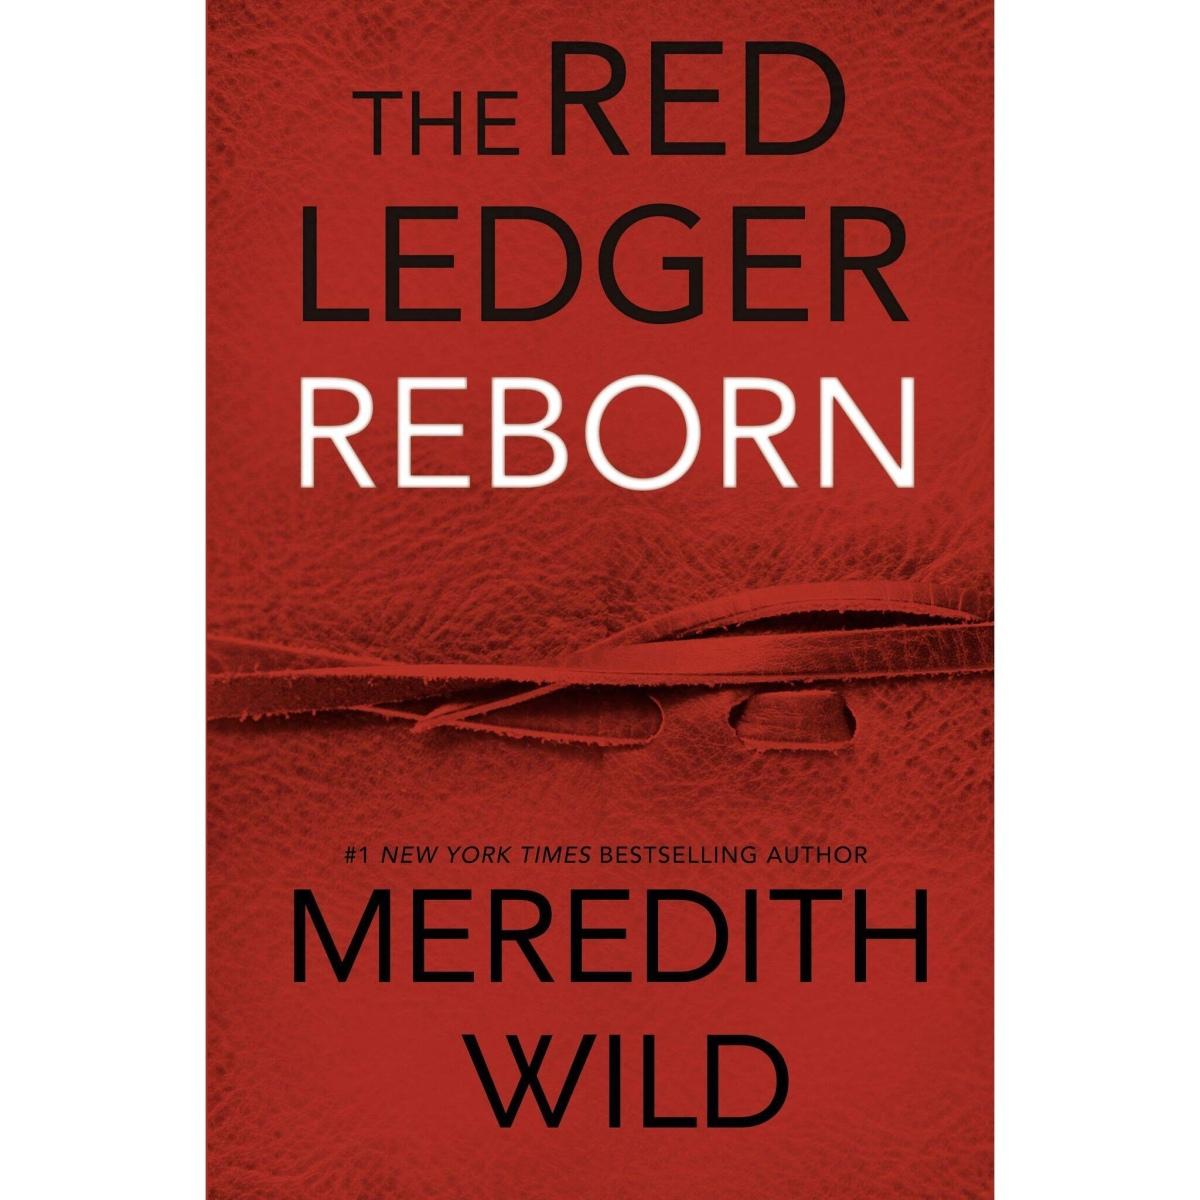 Review: Reborn (The Red Ledger Vol. 1) by Meredith Wild